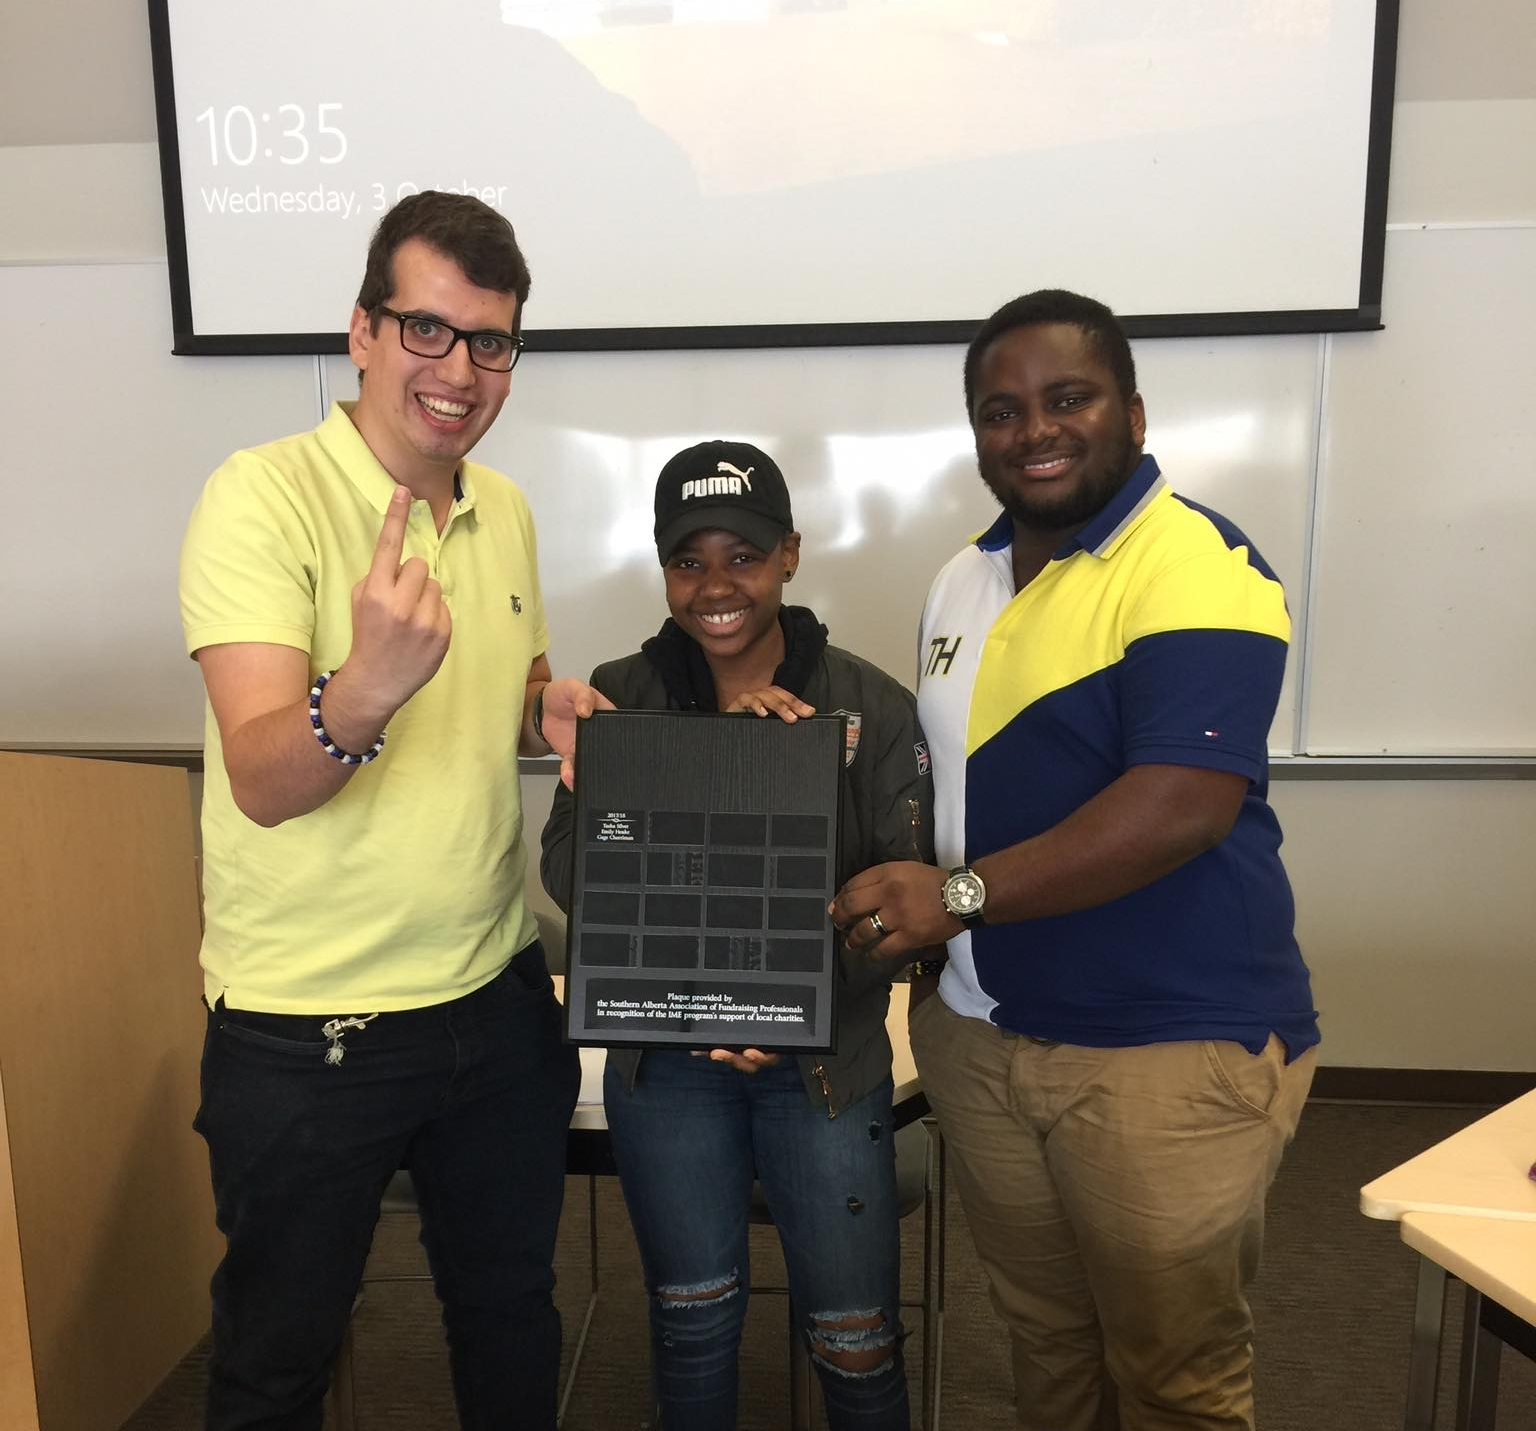 Winners of the 2018 IME internal case competition, Peter Hurd-Watler (left), Tabby Ndhlovu (middle), and Bill Nkeih (right).